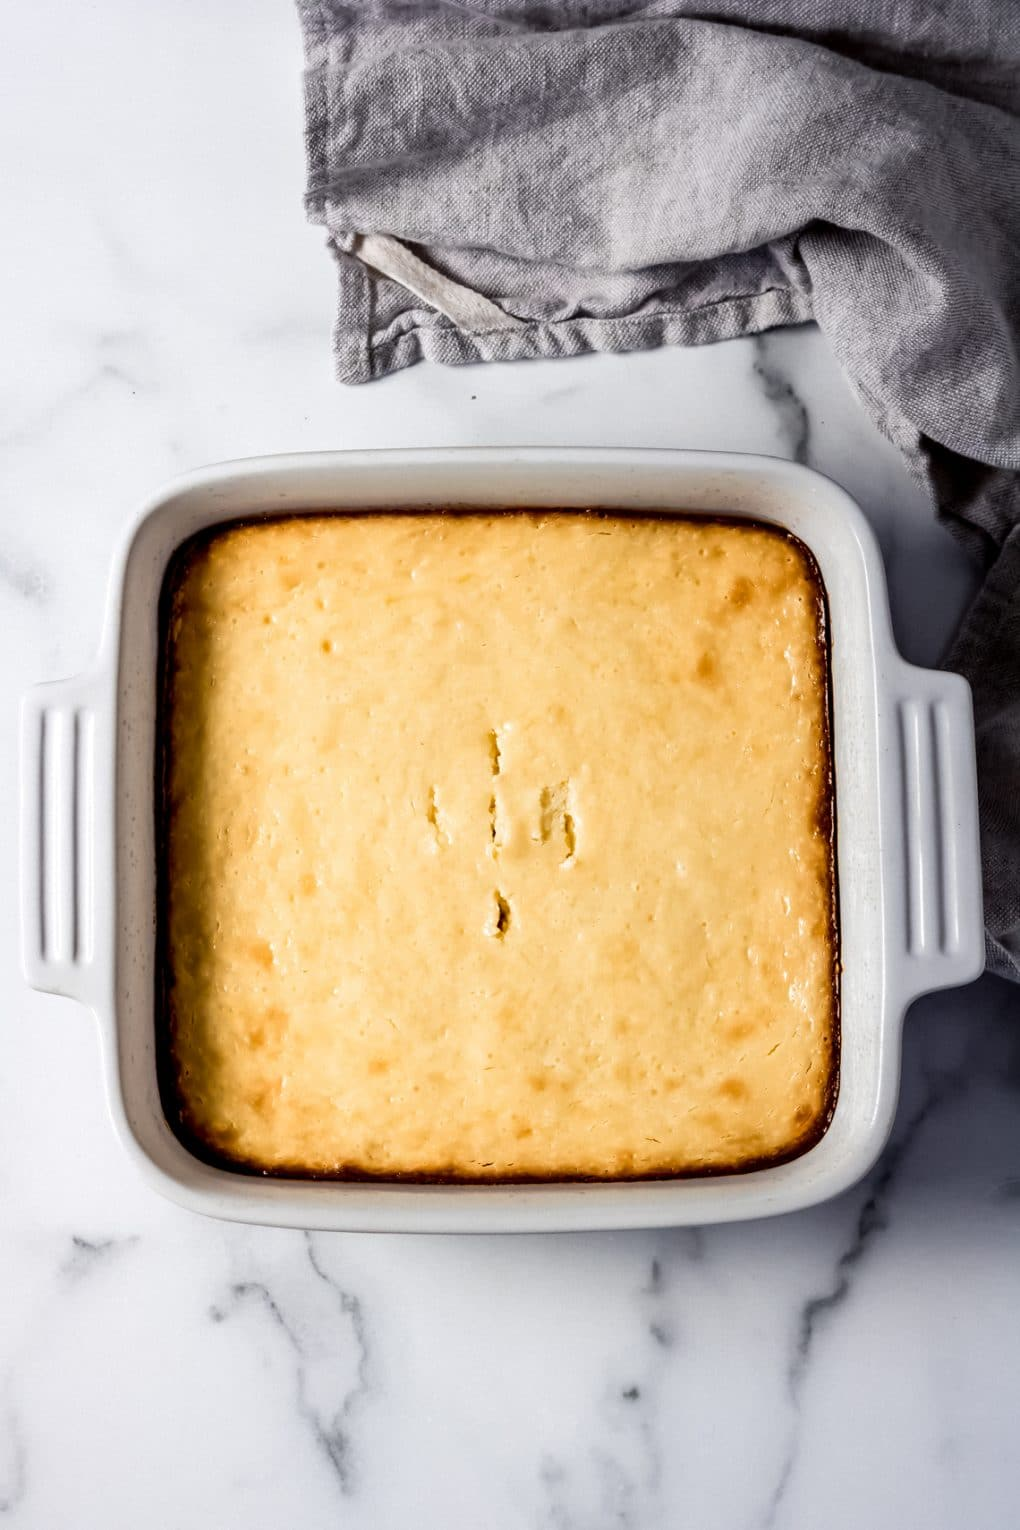 a baked dish of gluten-free lemon bars